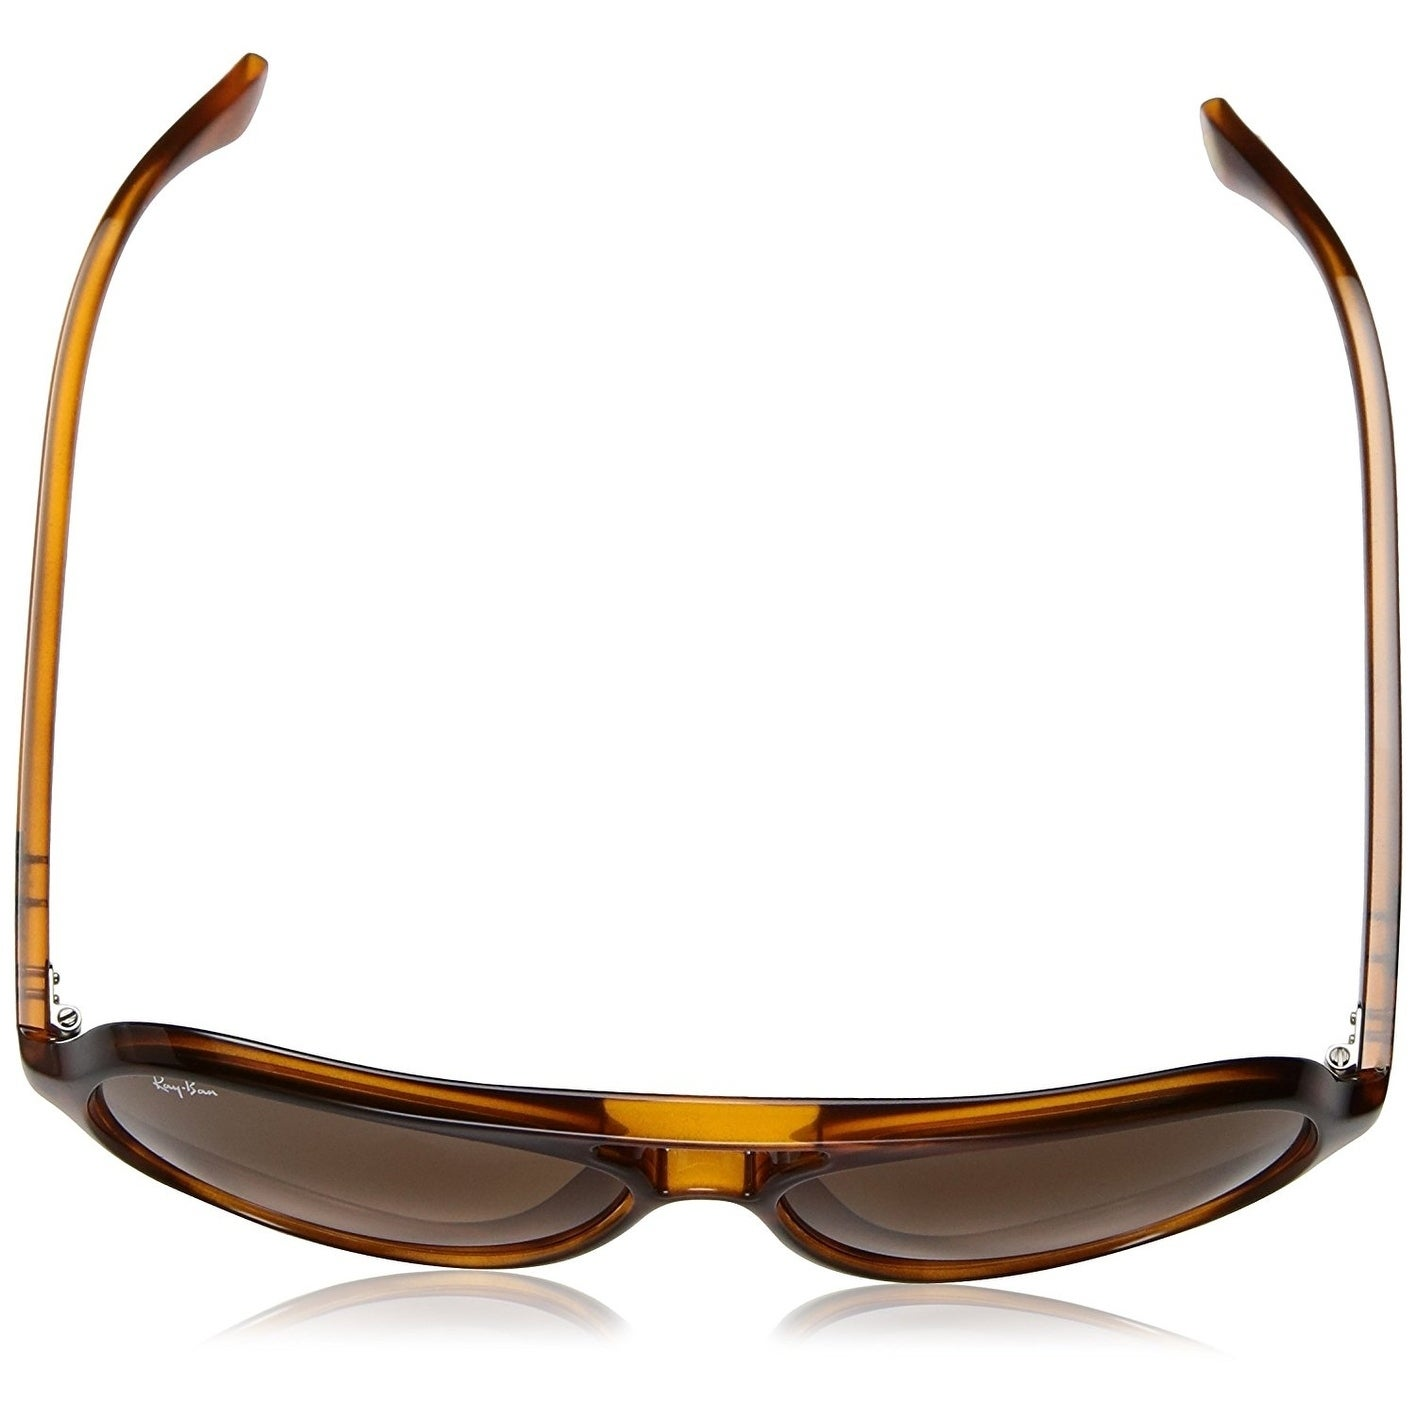 76e387b1dd1677 ... promo code for shop ray ban unisex rb4125 cats 5000 classic tortoise  frame pink brown gradient ...